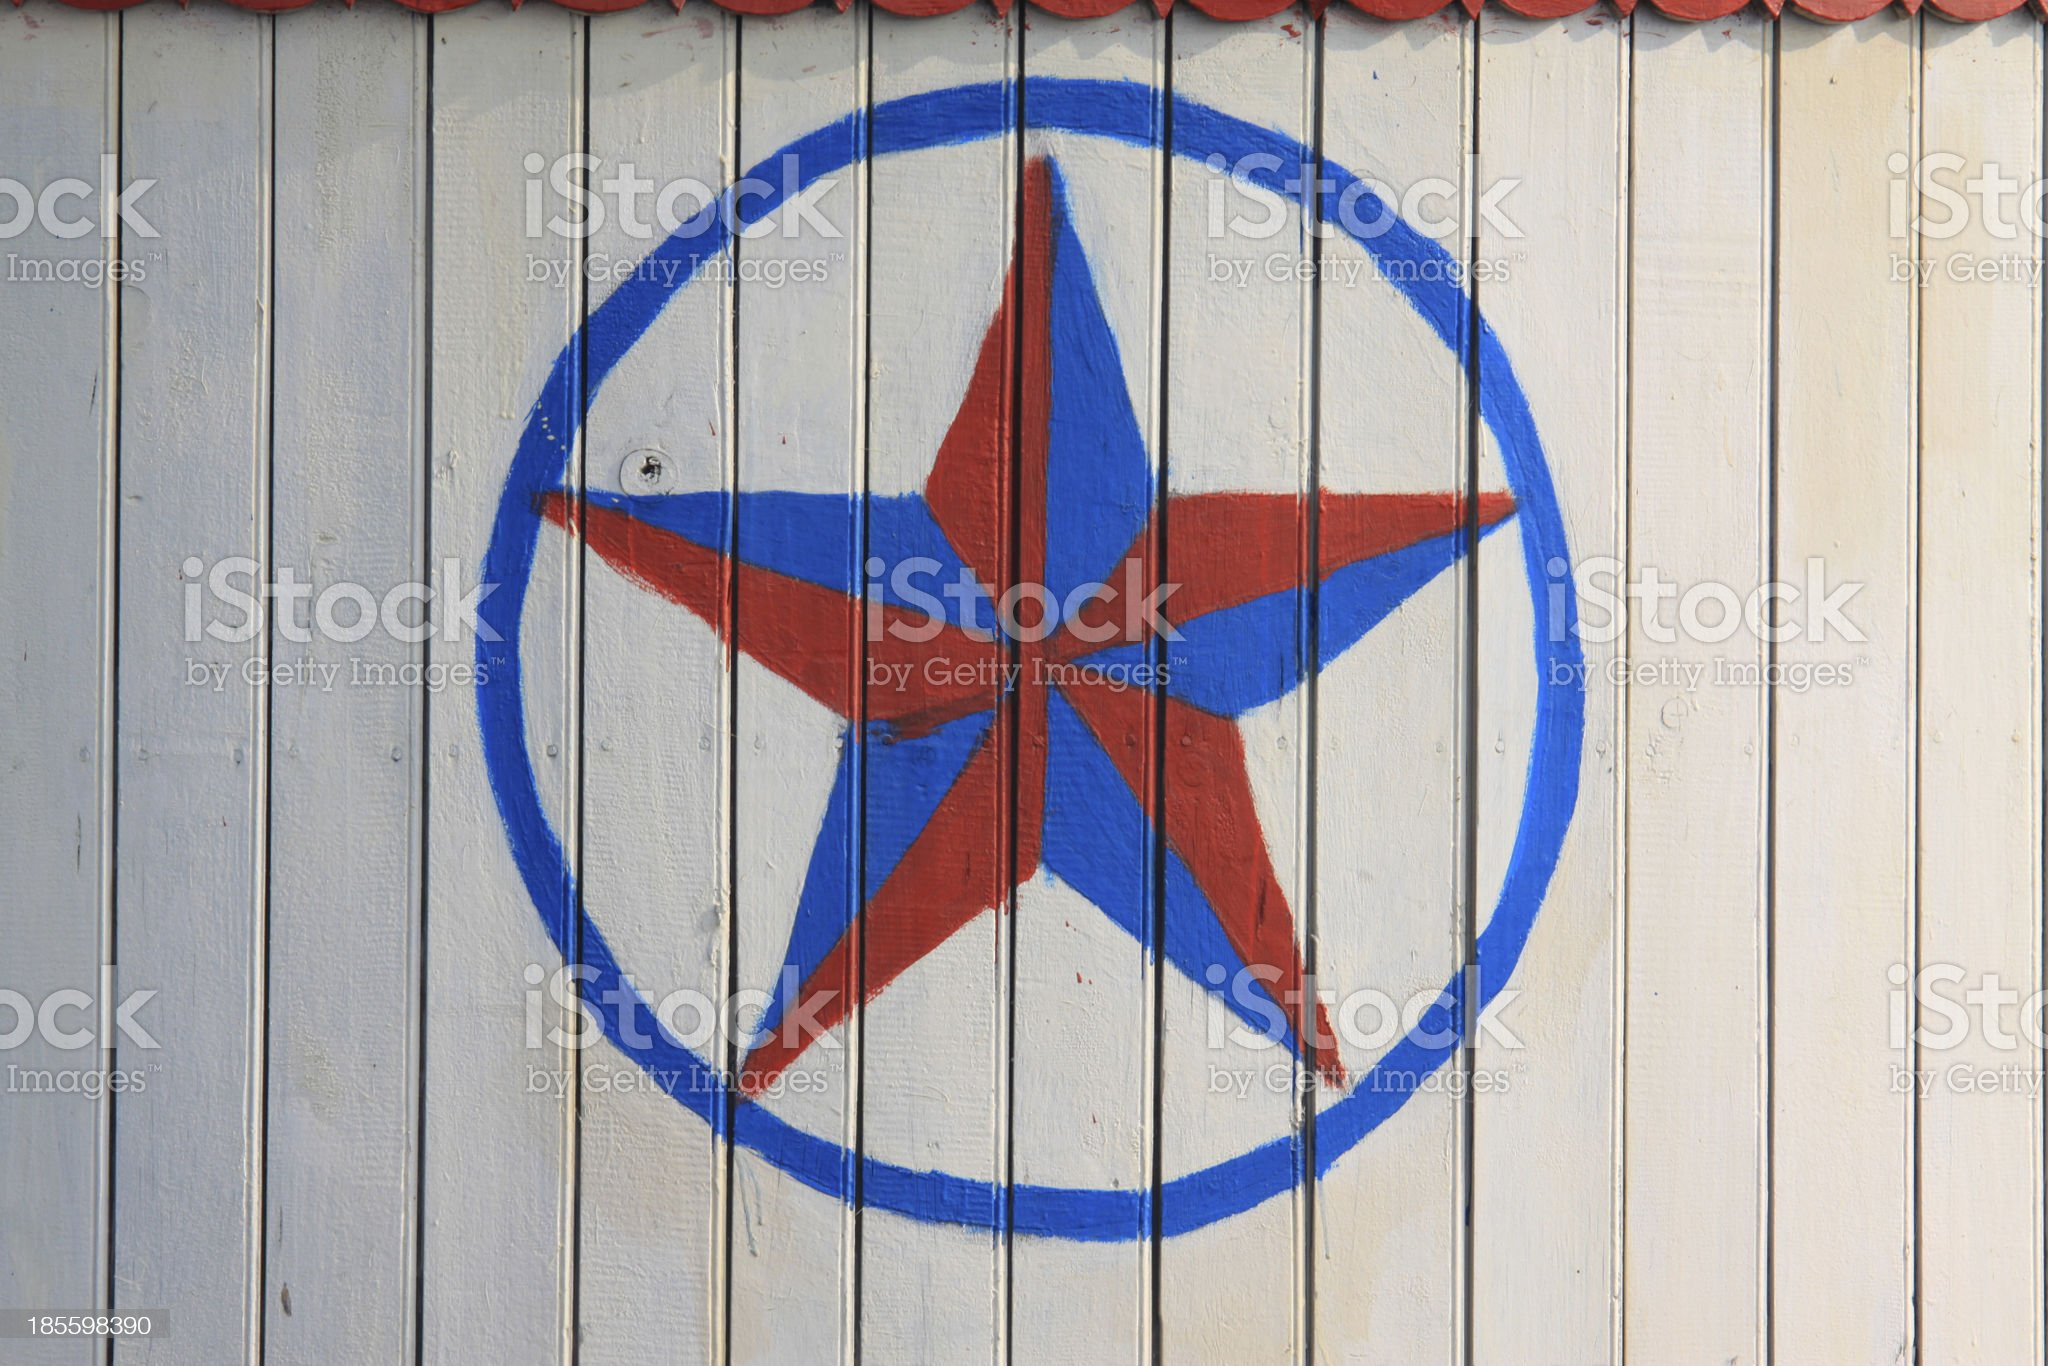 five-pointed star sign royalty-free stock photo